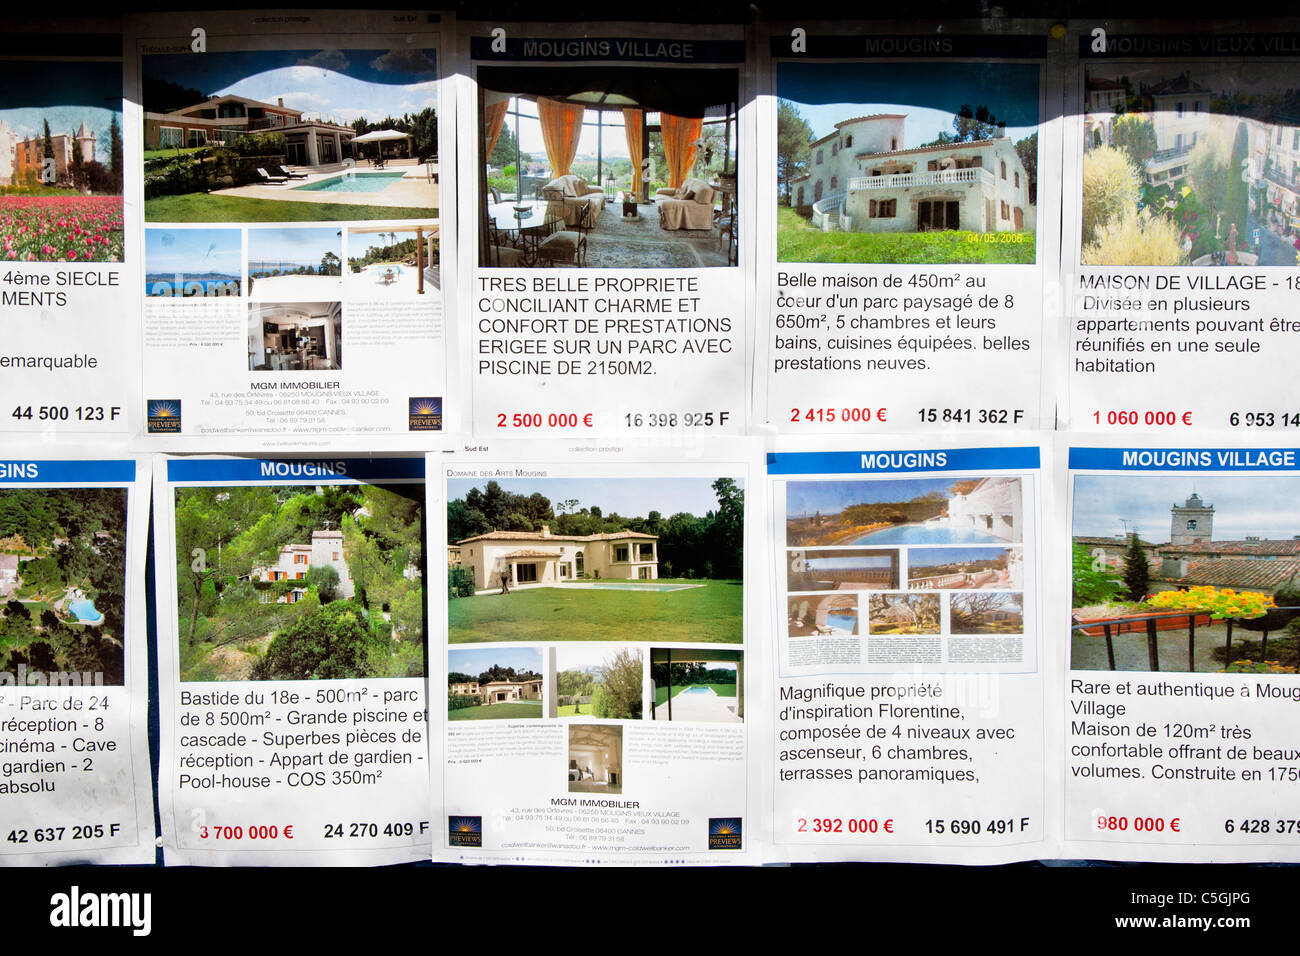 Estate Agents window showing houses for sale, Mougins, Provence, France - Stock Image